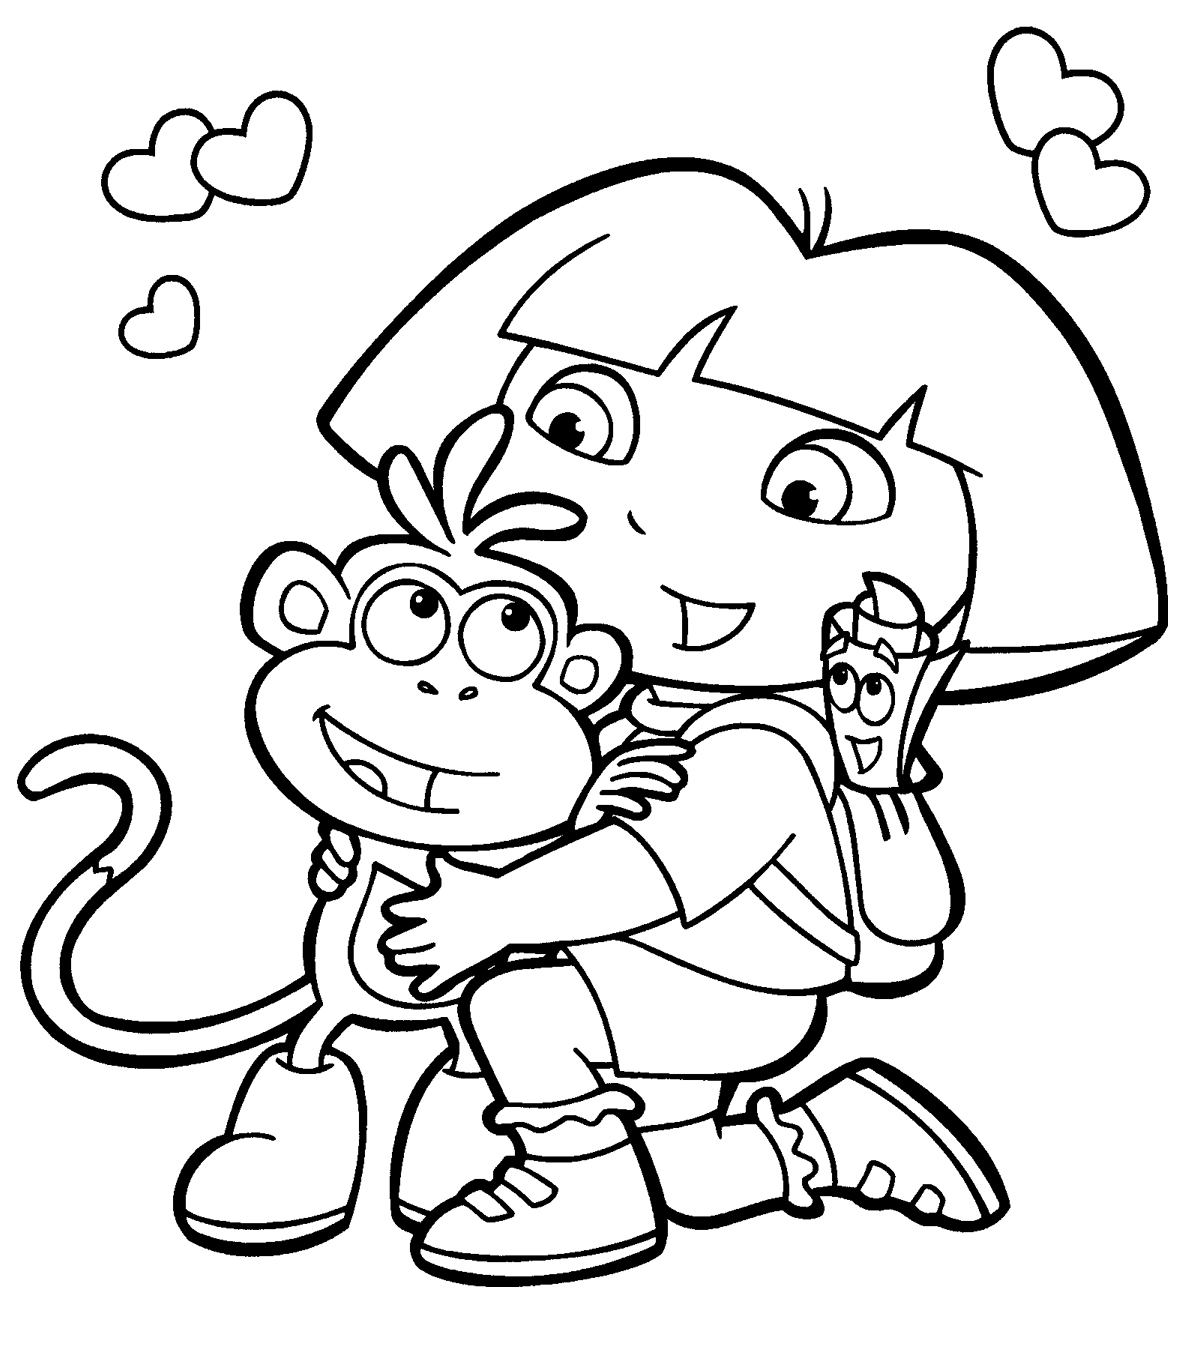 Adventure dora and boots coloring pages for Dora the explorer coloring pages to print